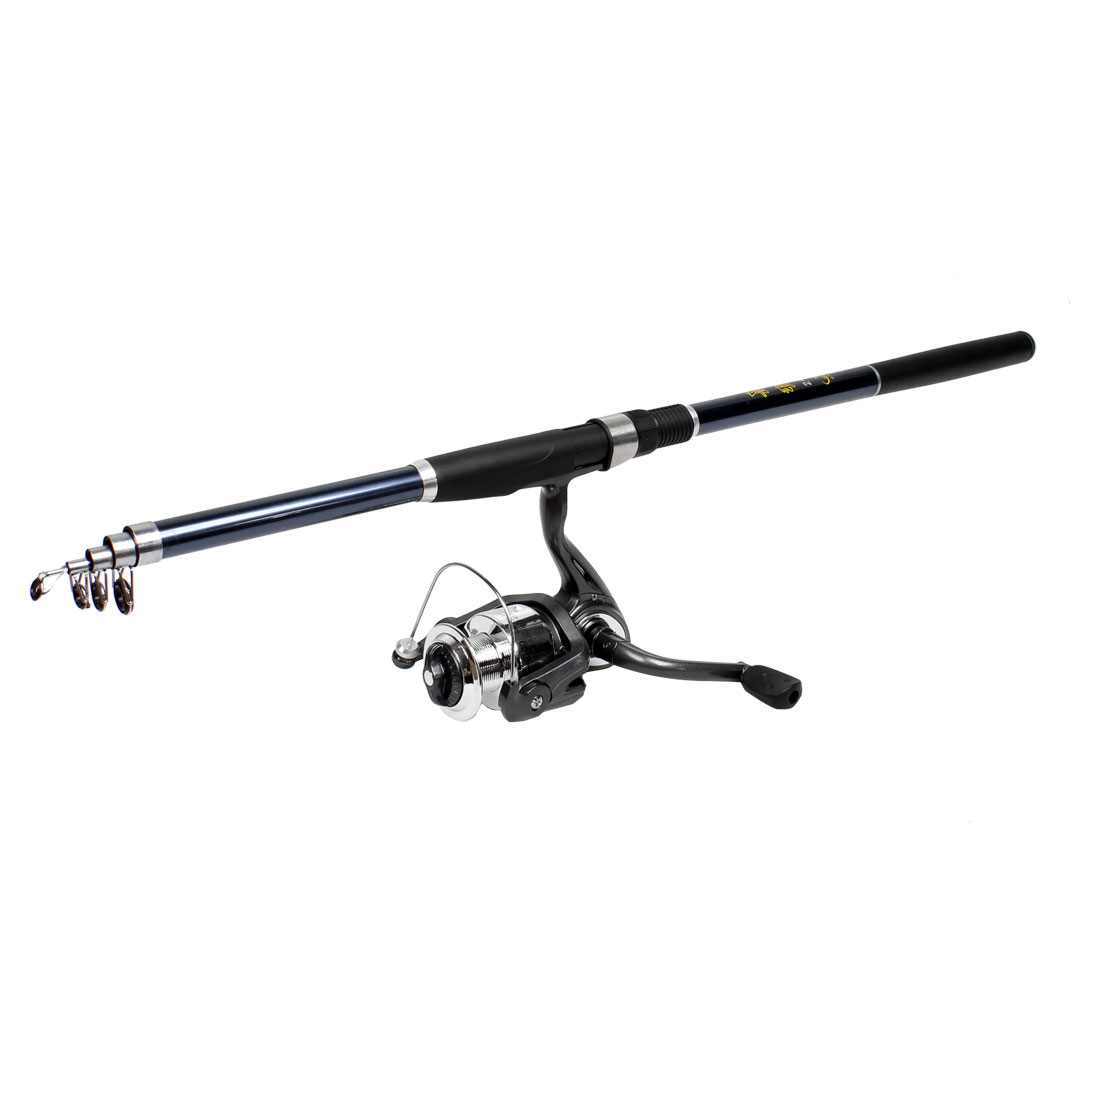 2.4M Plastic Handle 5 Sections Telescopic Fishing Rod Pole w Spinning Reel